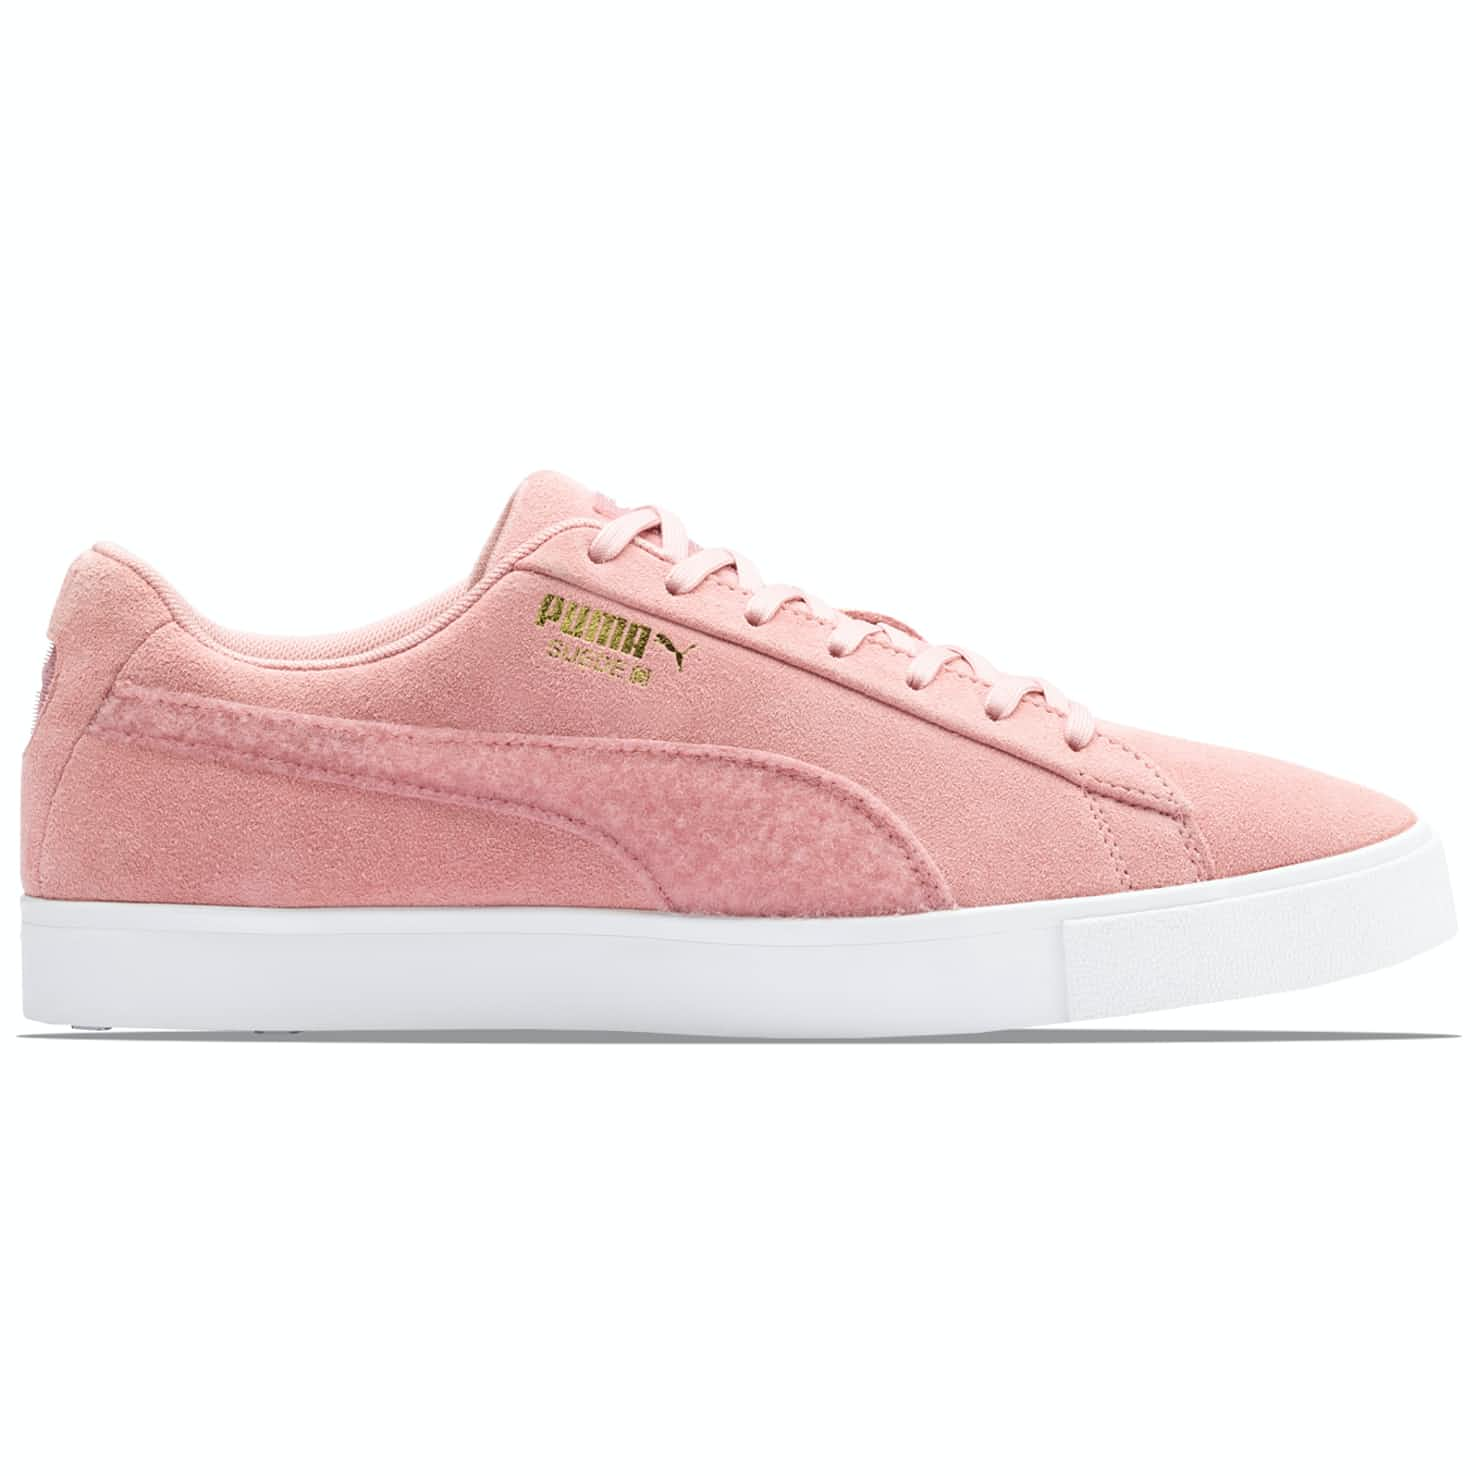 LE Suede Golf Patch Bridal Rose - AW19